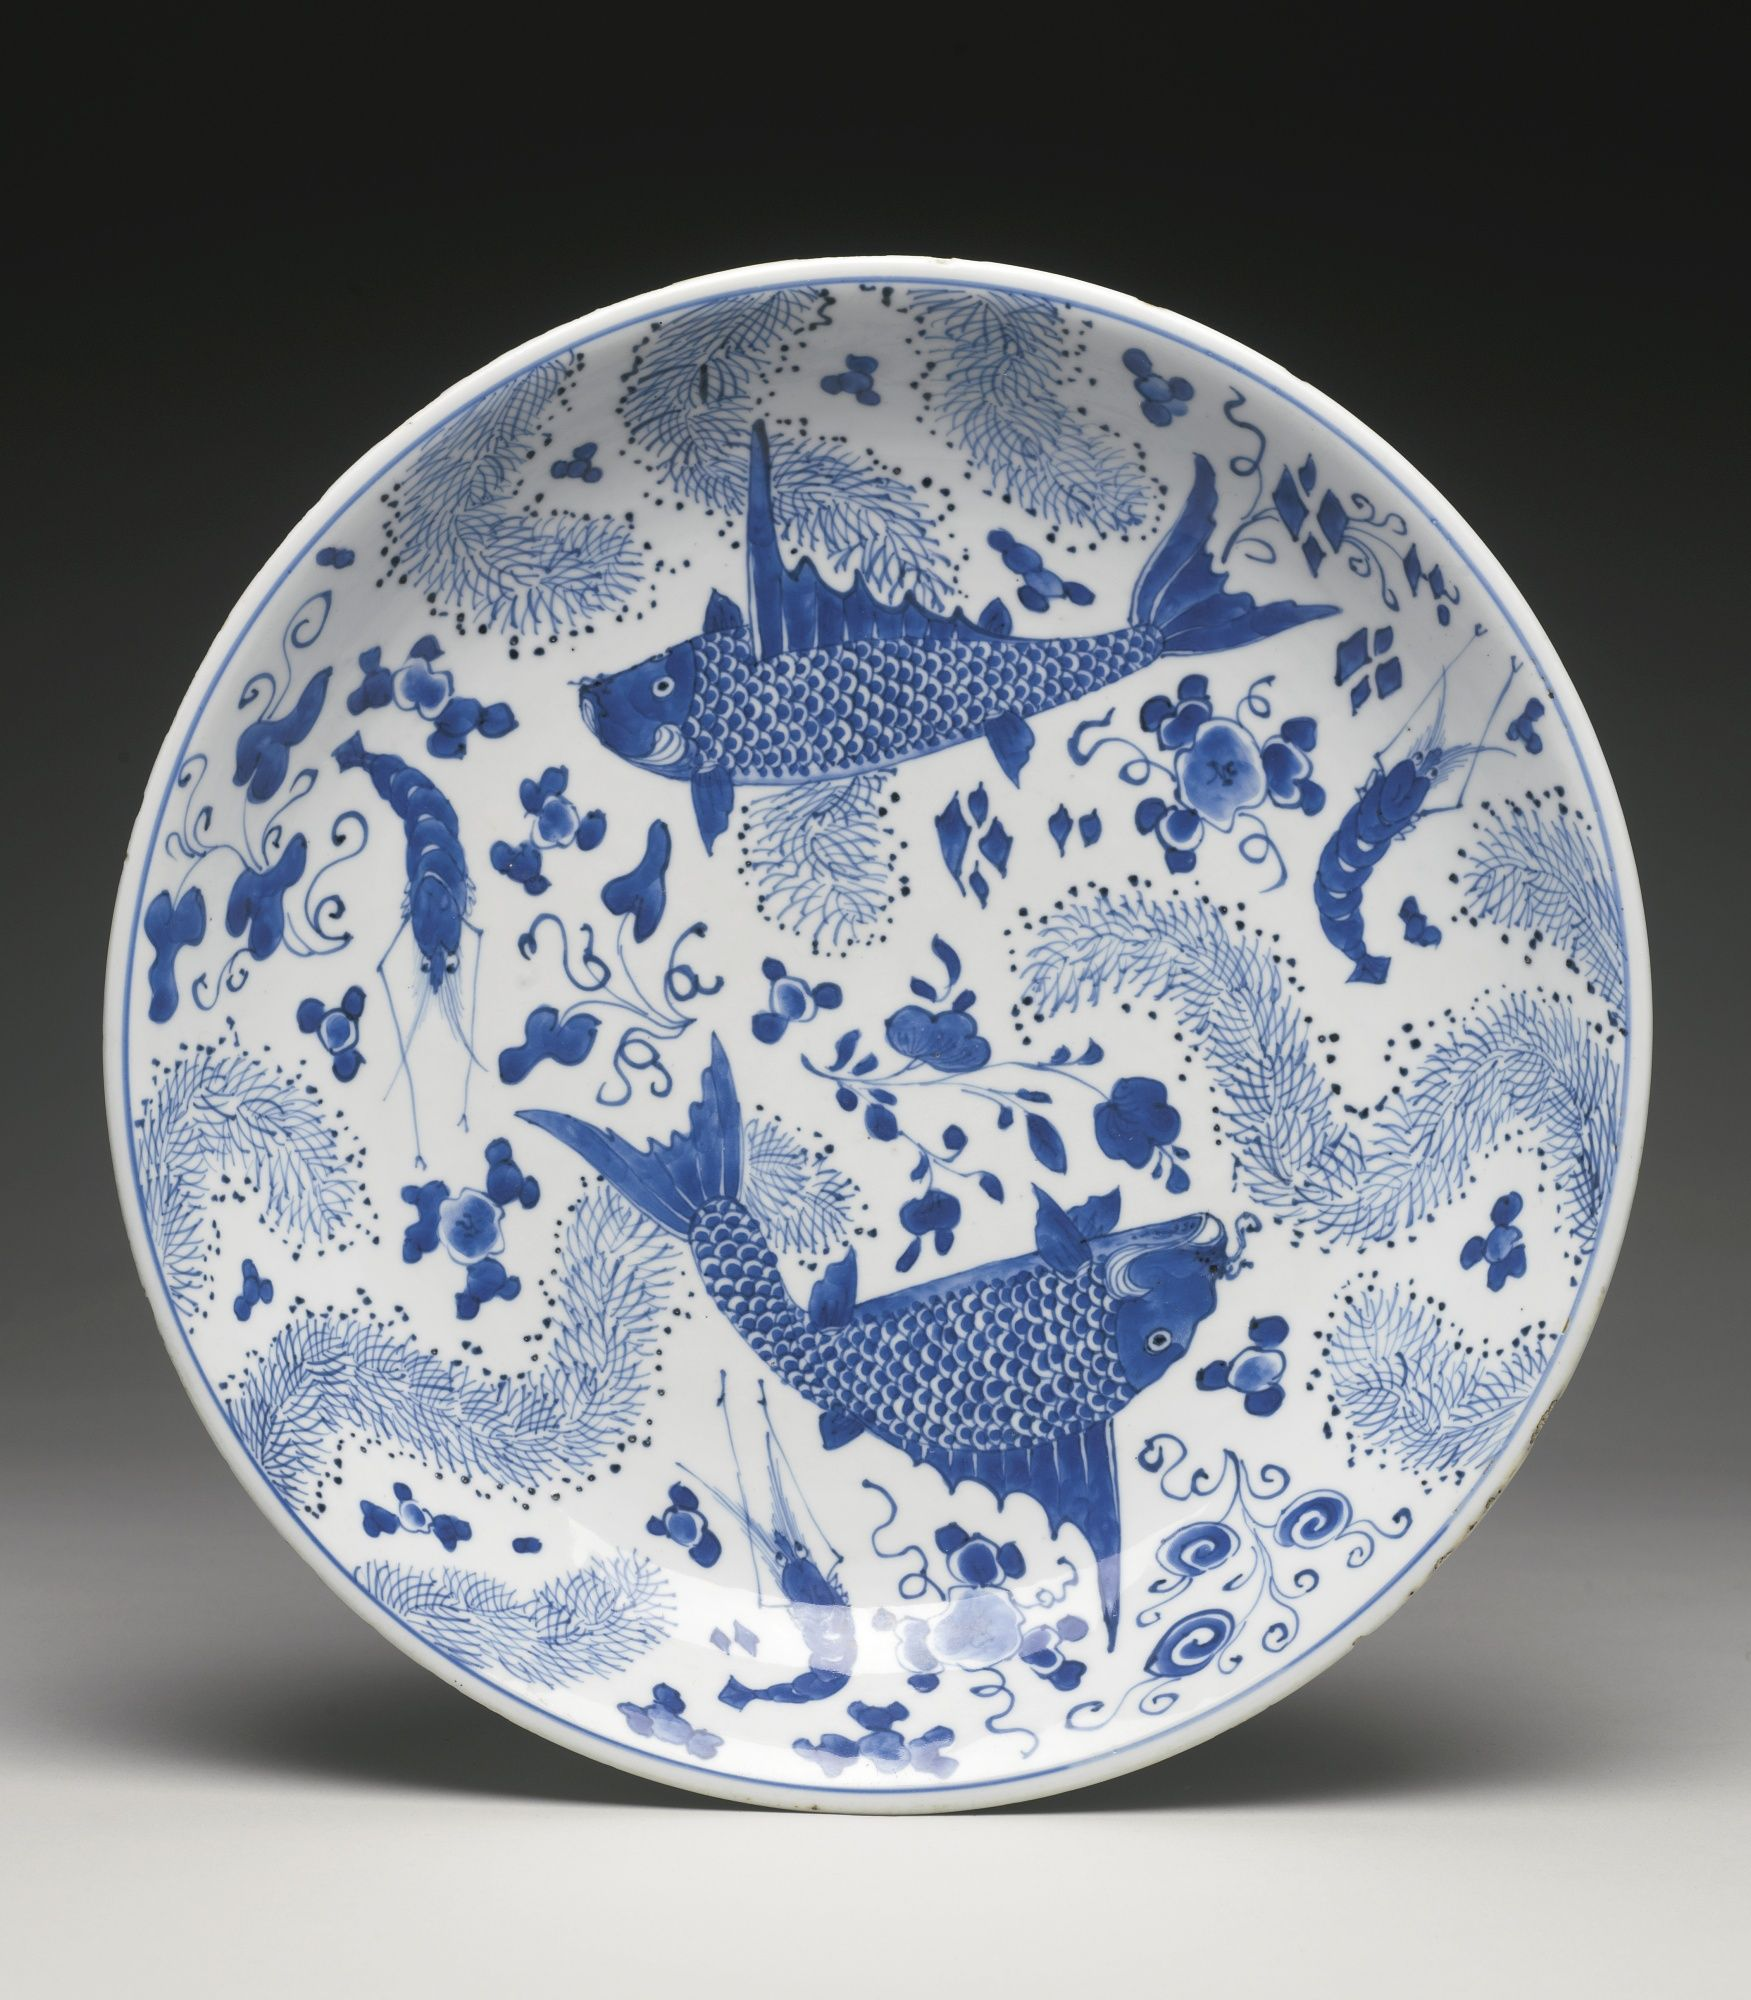 Jp A Blue And White Fish And Waterweed Dish Qing Dynasty Kangxi Period เคร องป นด นเผา